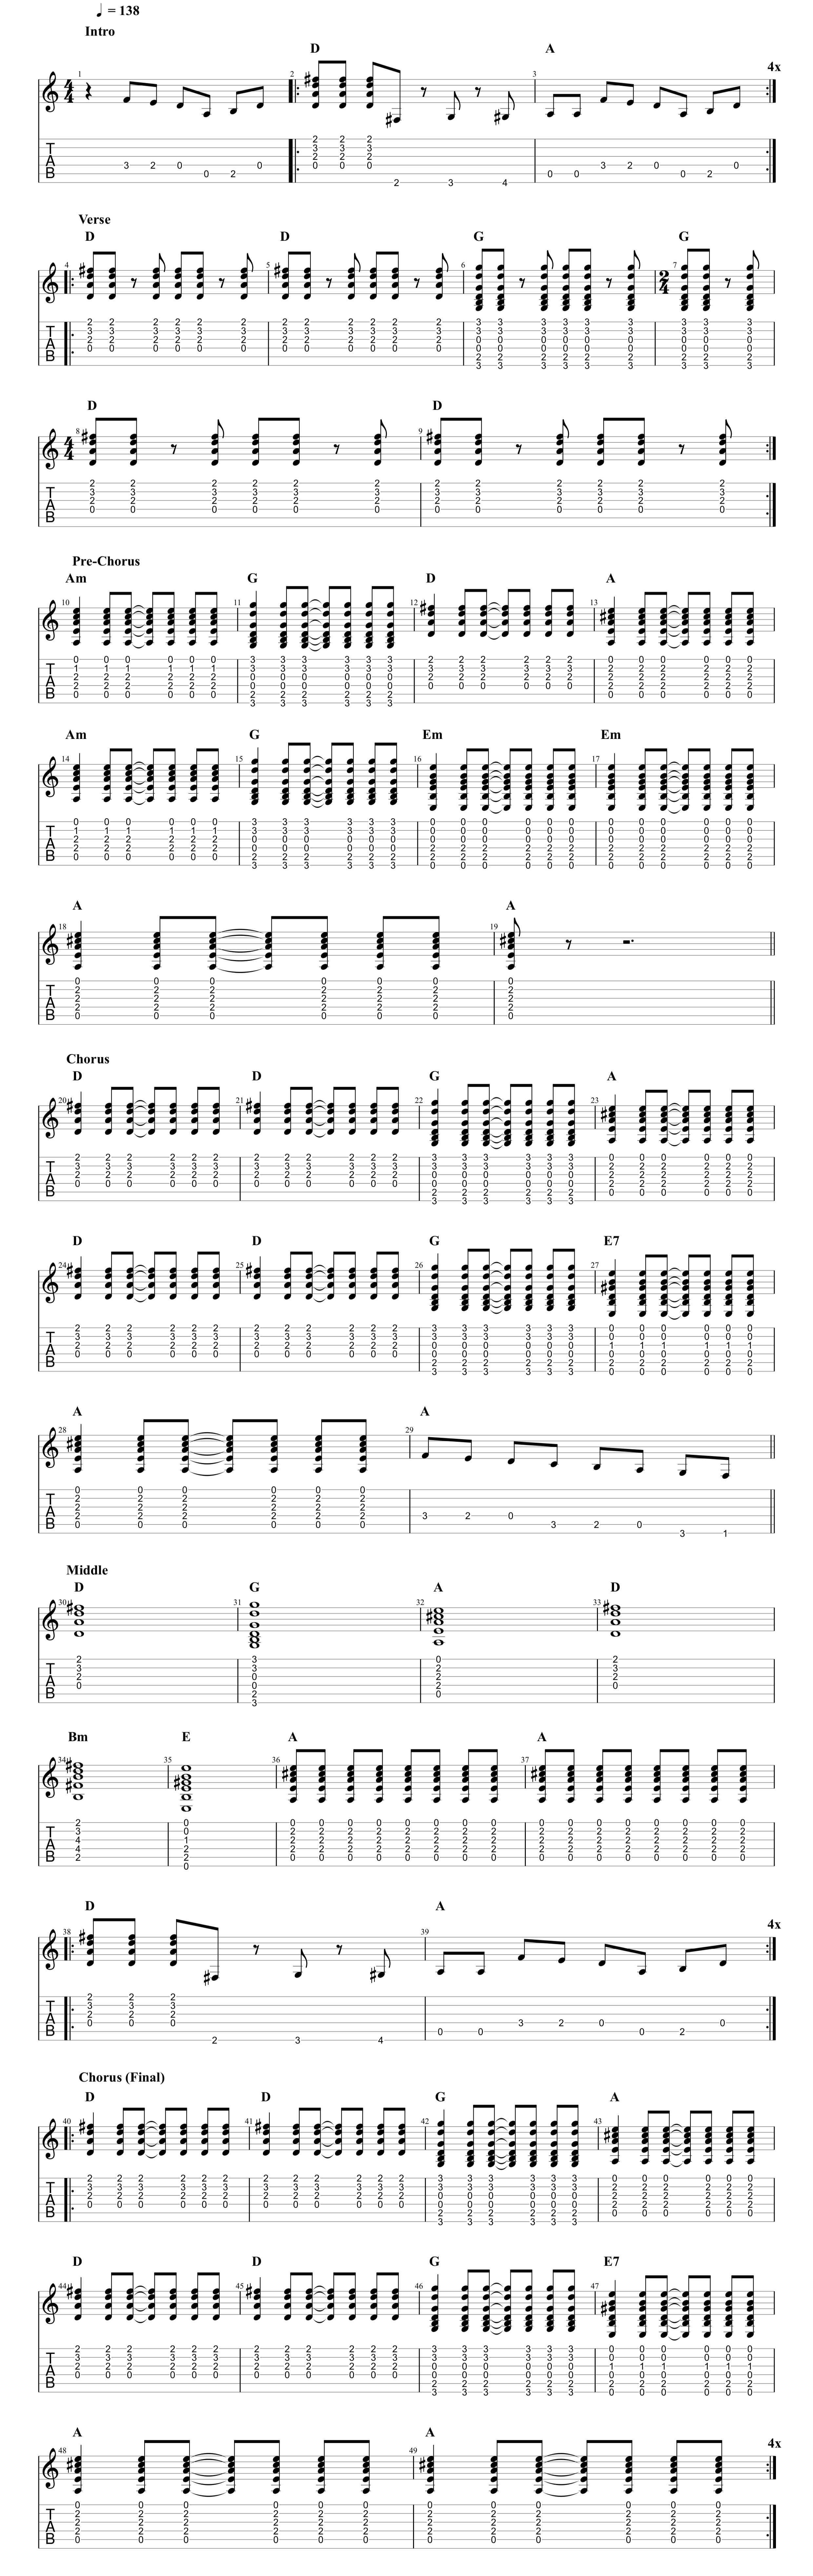 Elton John - Step Into Christmas - NOTATION GUITAR.jpg